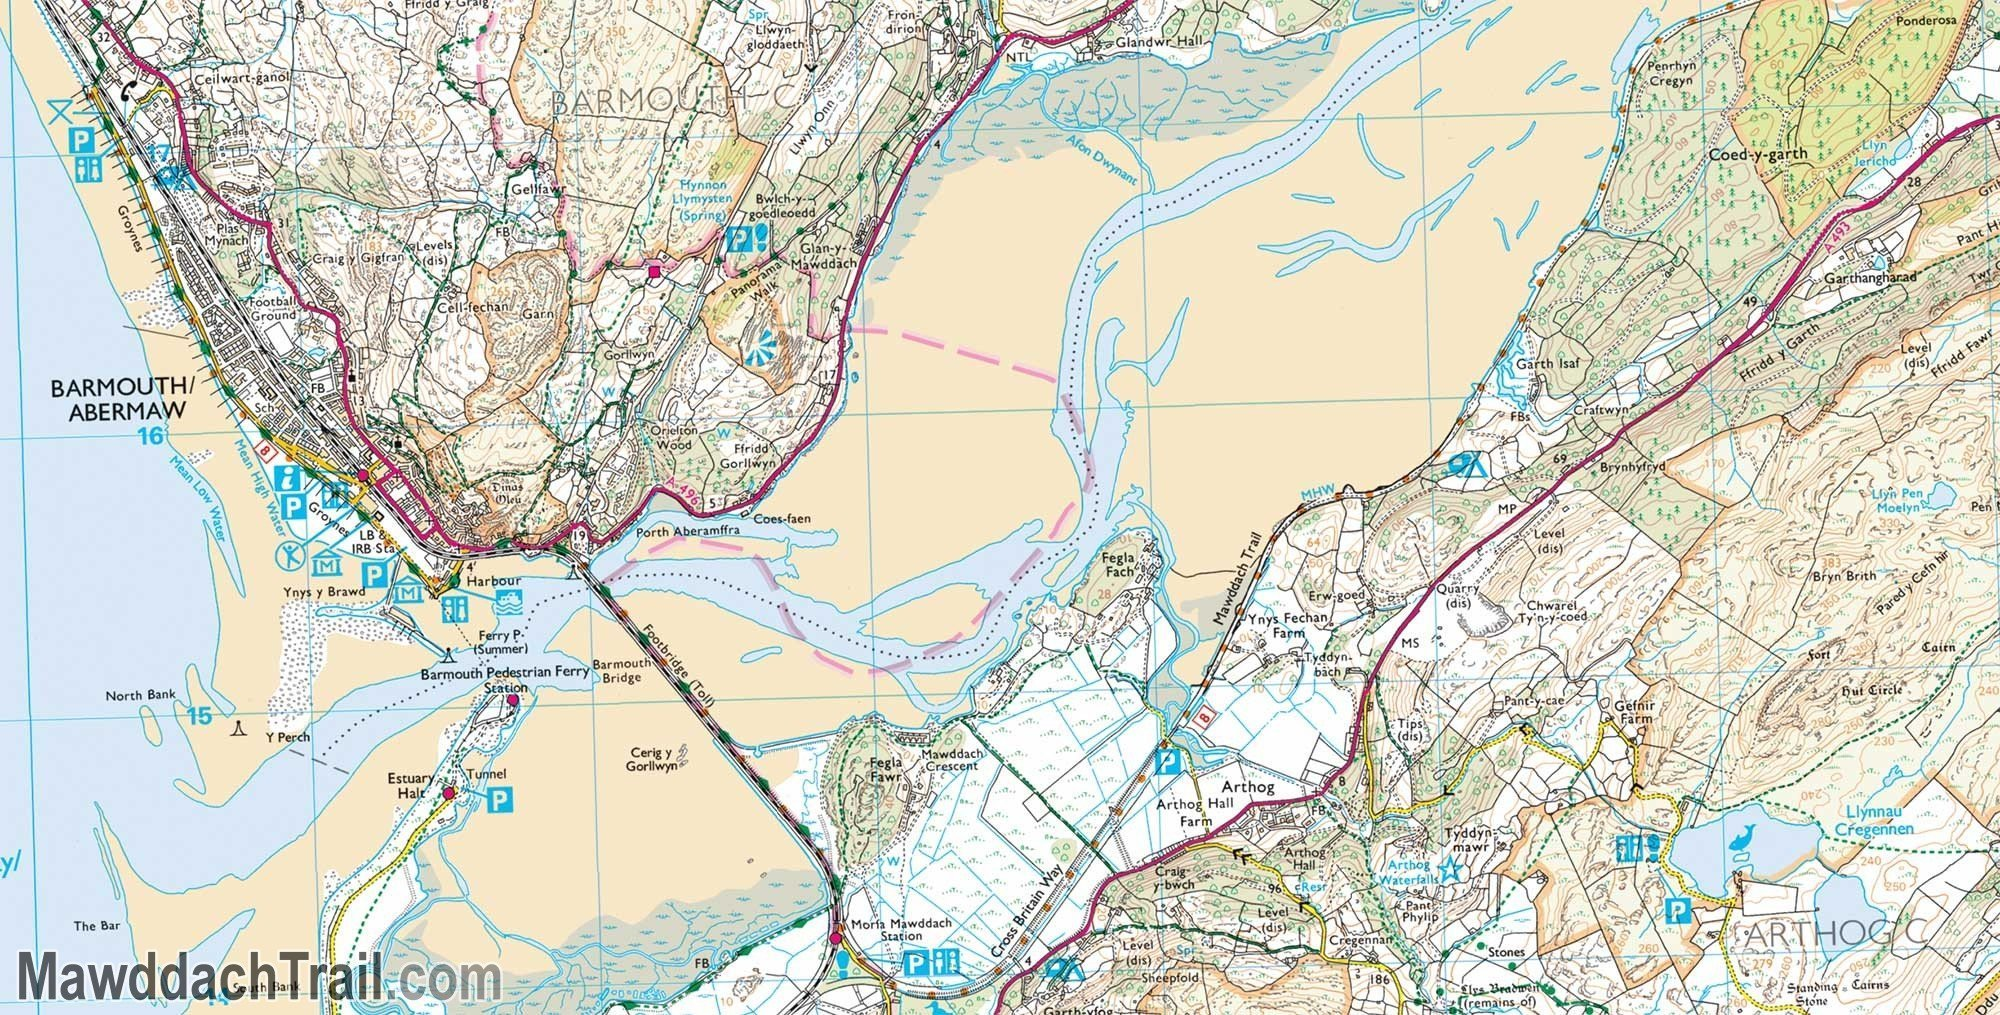 OS Explorer Map - Mawddach Trail (End Section)